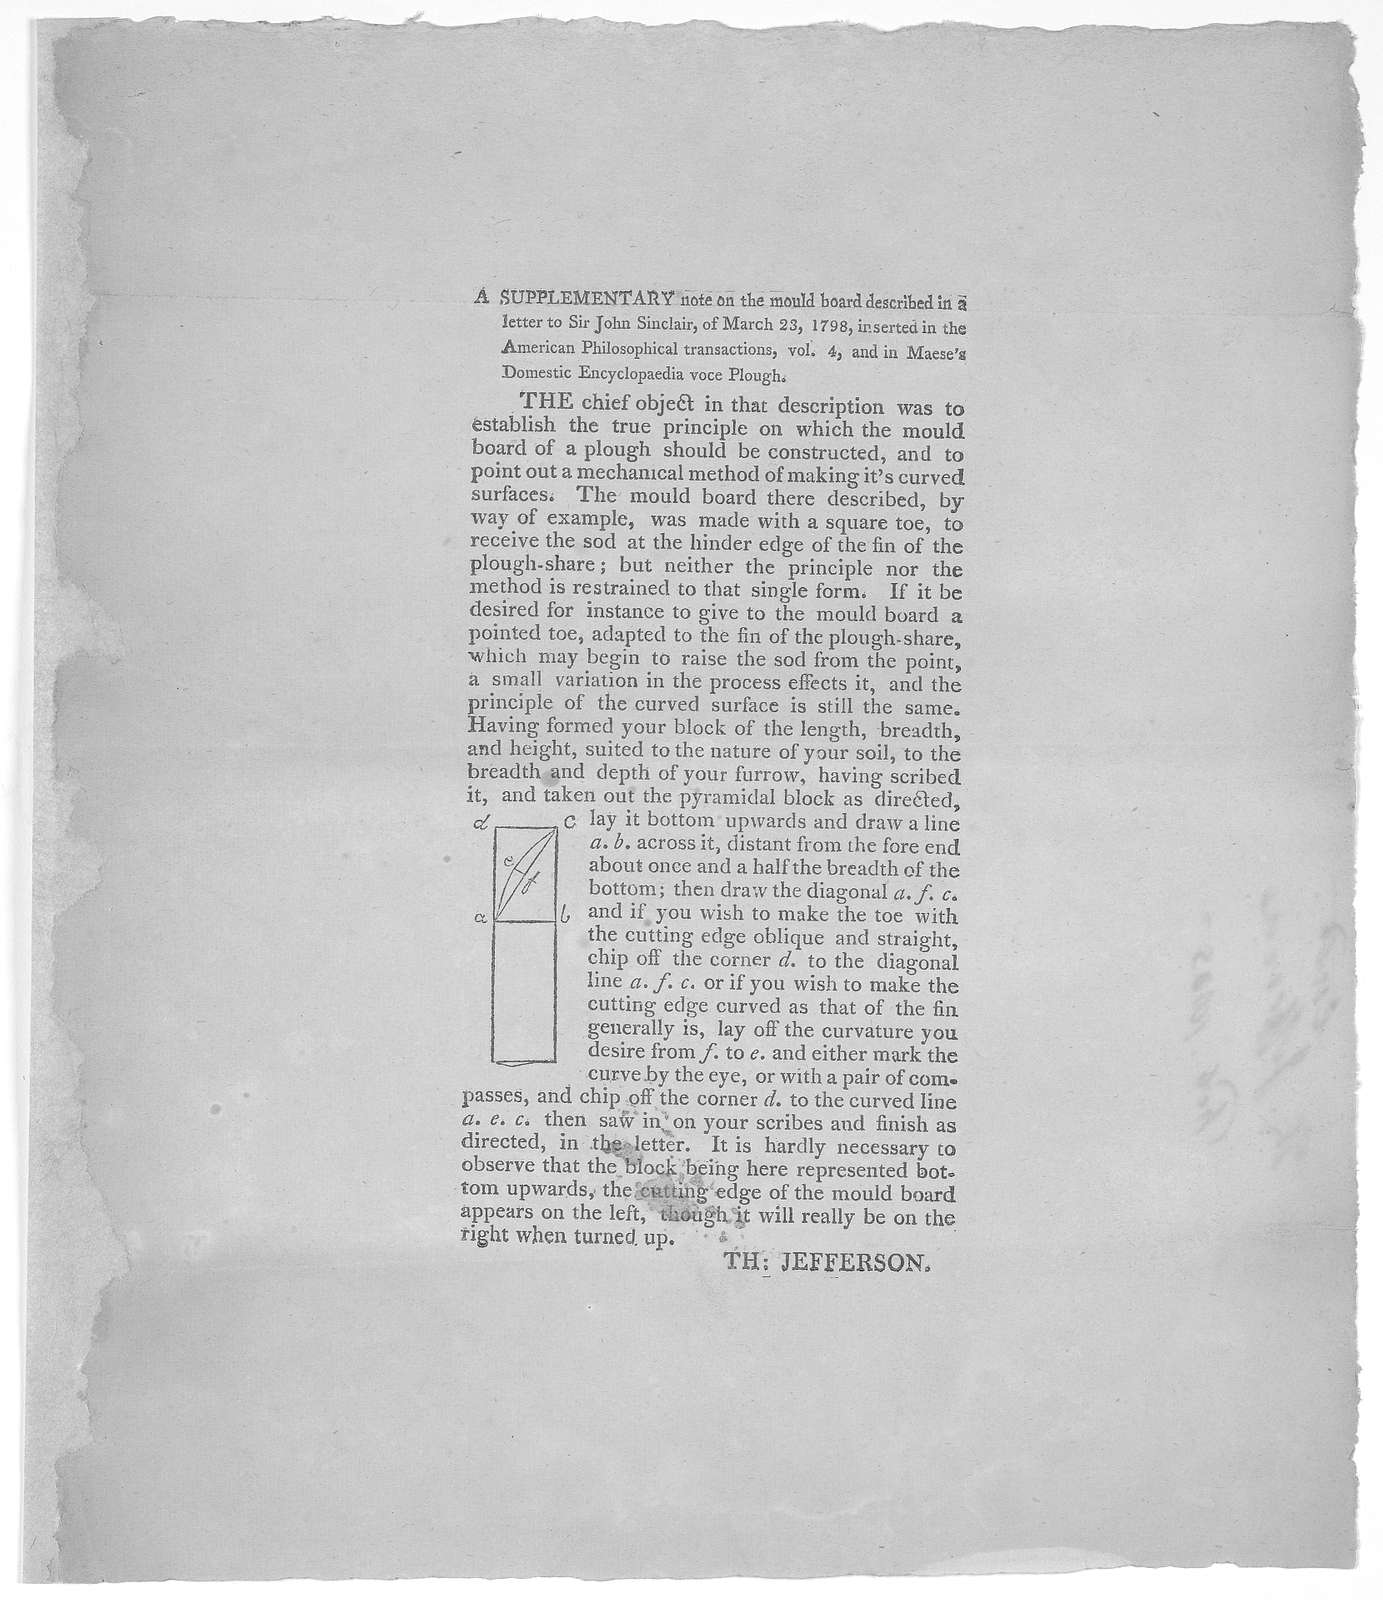 A supplementary note on the mould board described in a letter to Sir John Sinclair, of March 23, 1798, inserted in the American Philosophical transactions, vol. 4 nd in Maese's Domestic Encyclopedia voce Plough [Thirty-seven lines and diagram] T